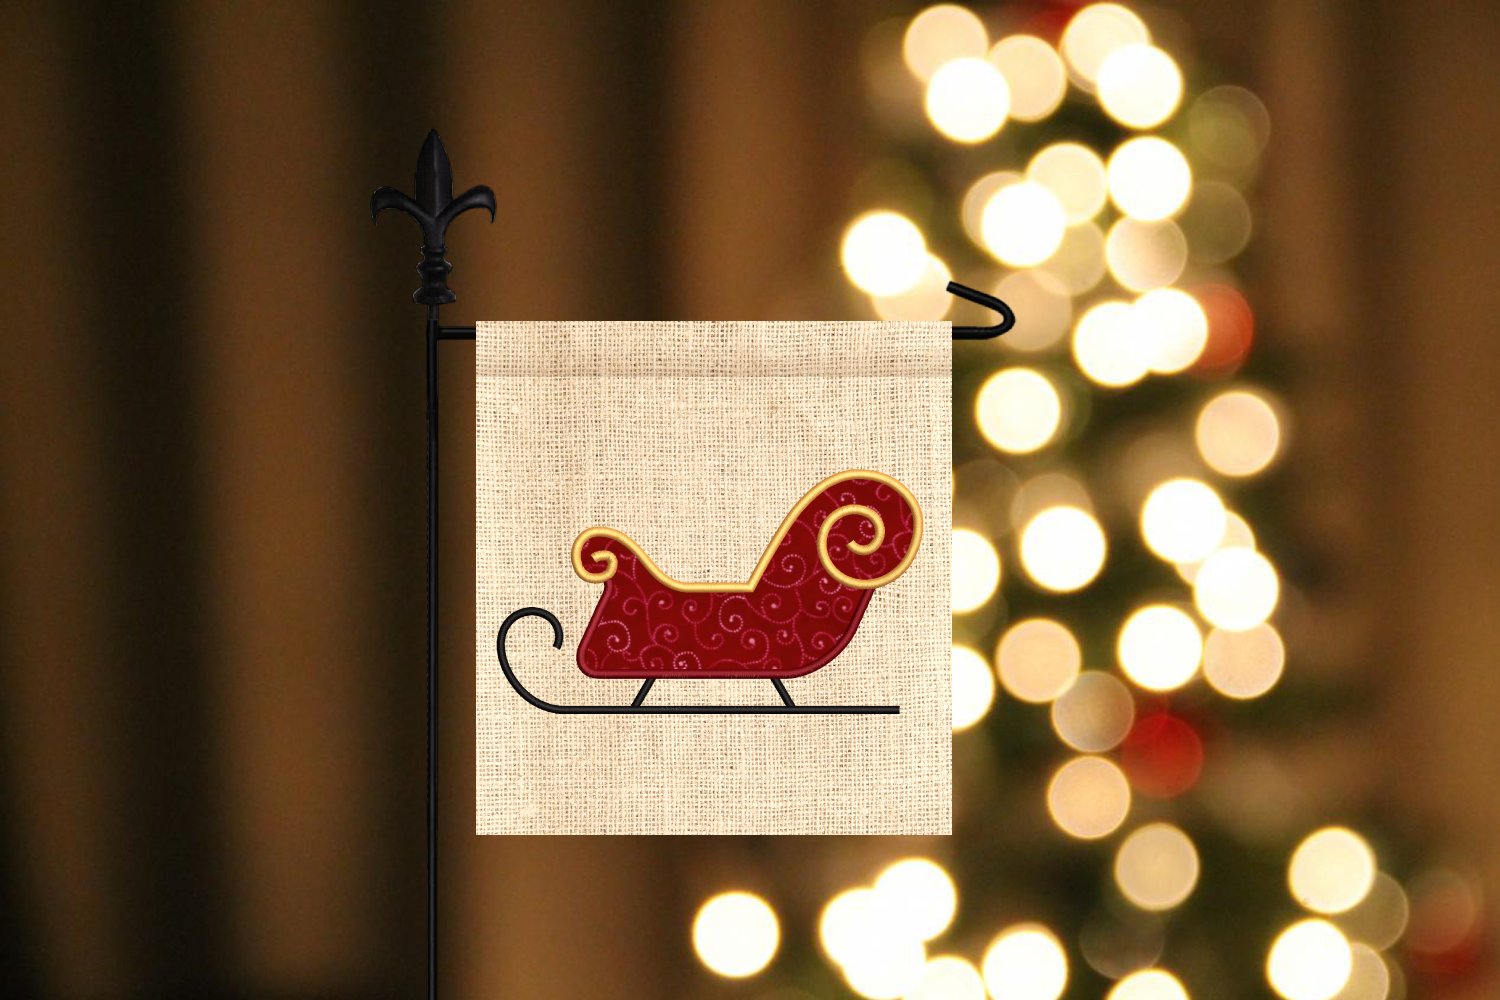 Santa S Sleigh Applique Embroidery By Designed By Geeks